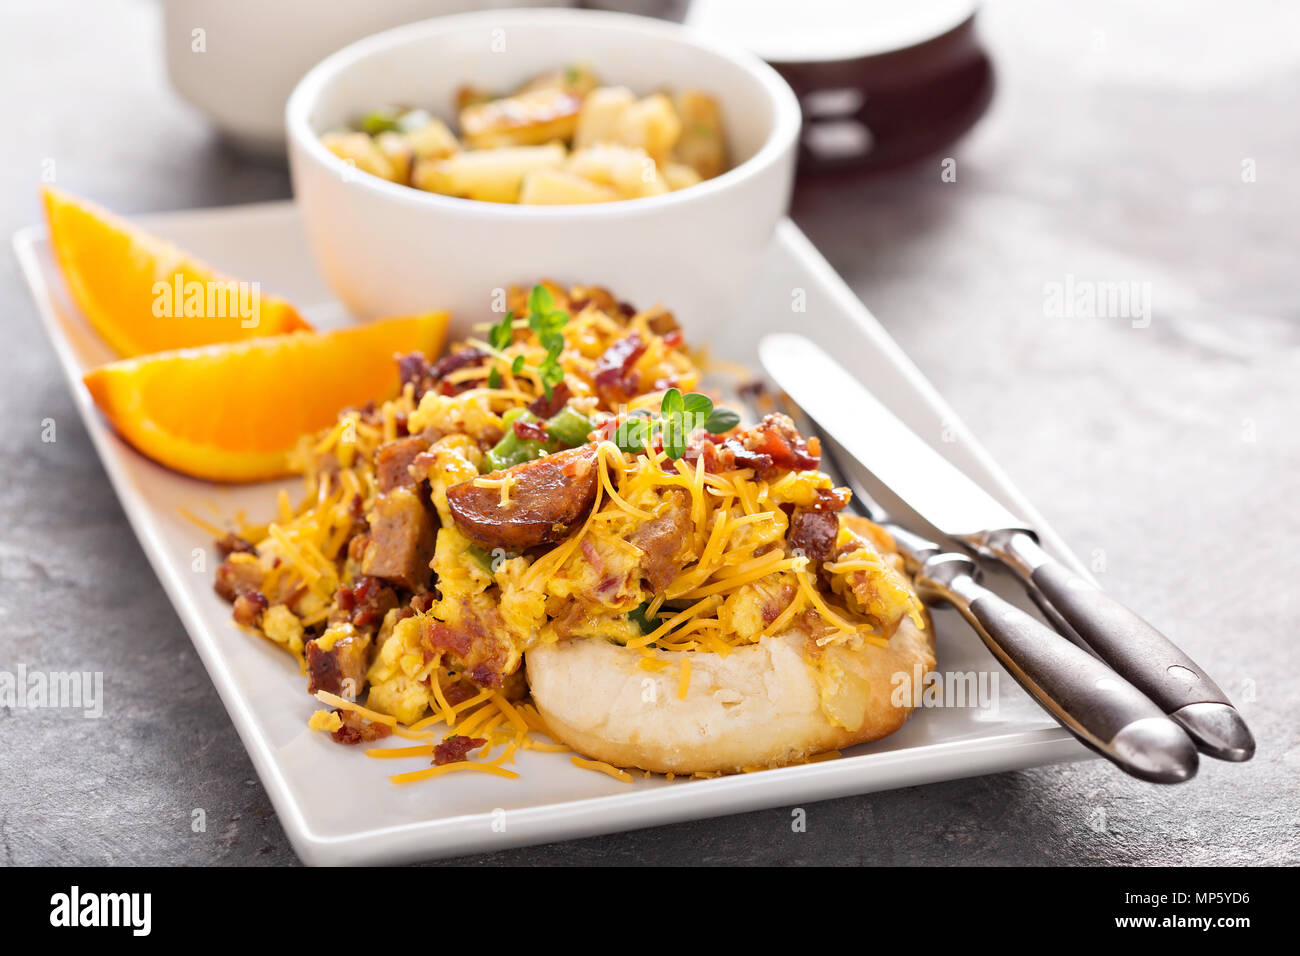 Breakfast biscuits with scrambled eggs - Stock Image